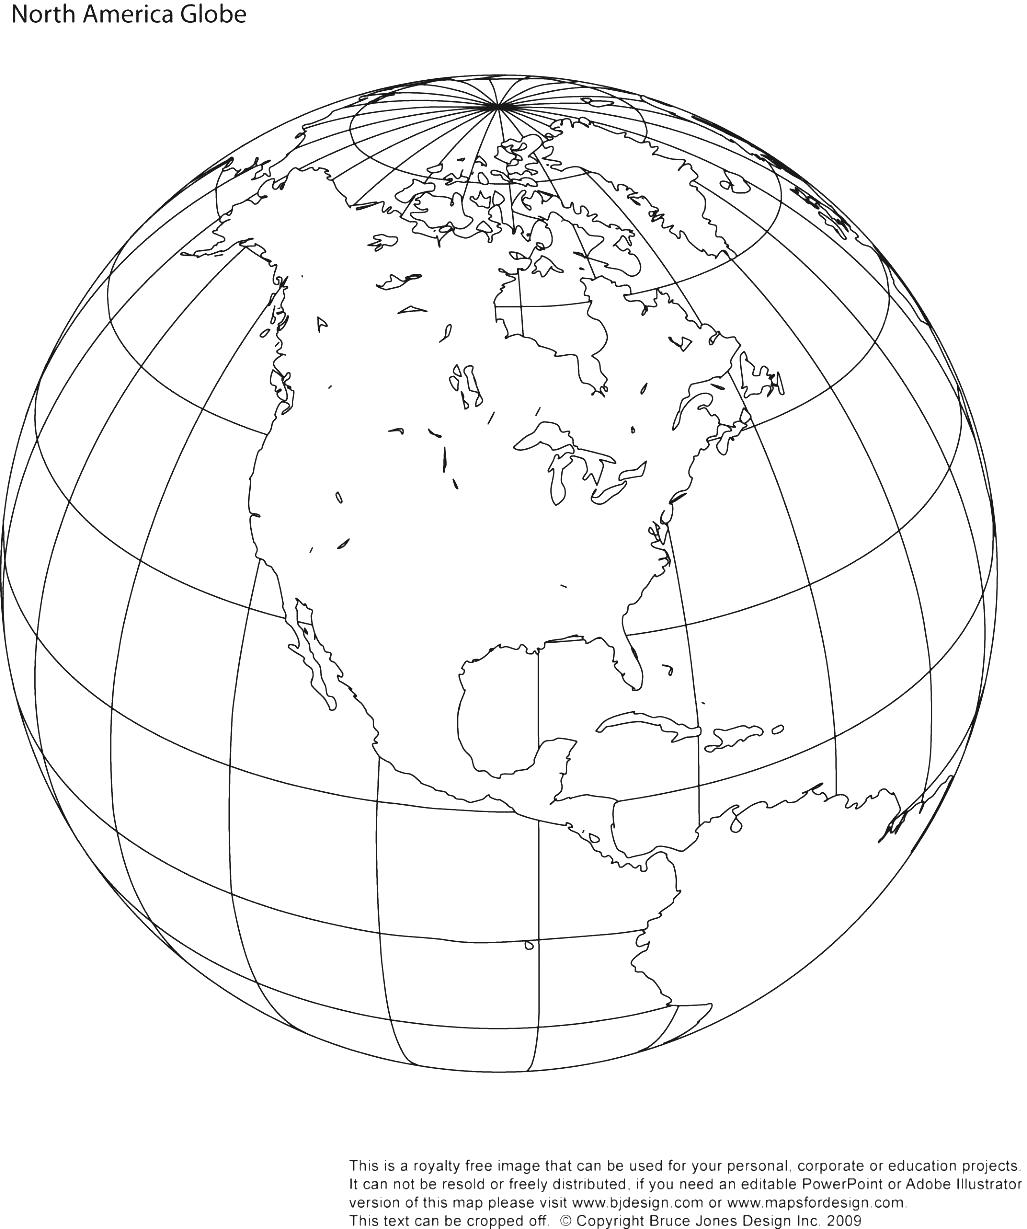 Vintage globe map black and white clipart banner royalty free download Free Map Border Cliparts, Download Free Clip Art, Free Clip ... banner royalty free download